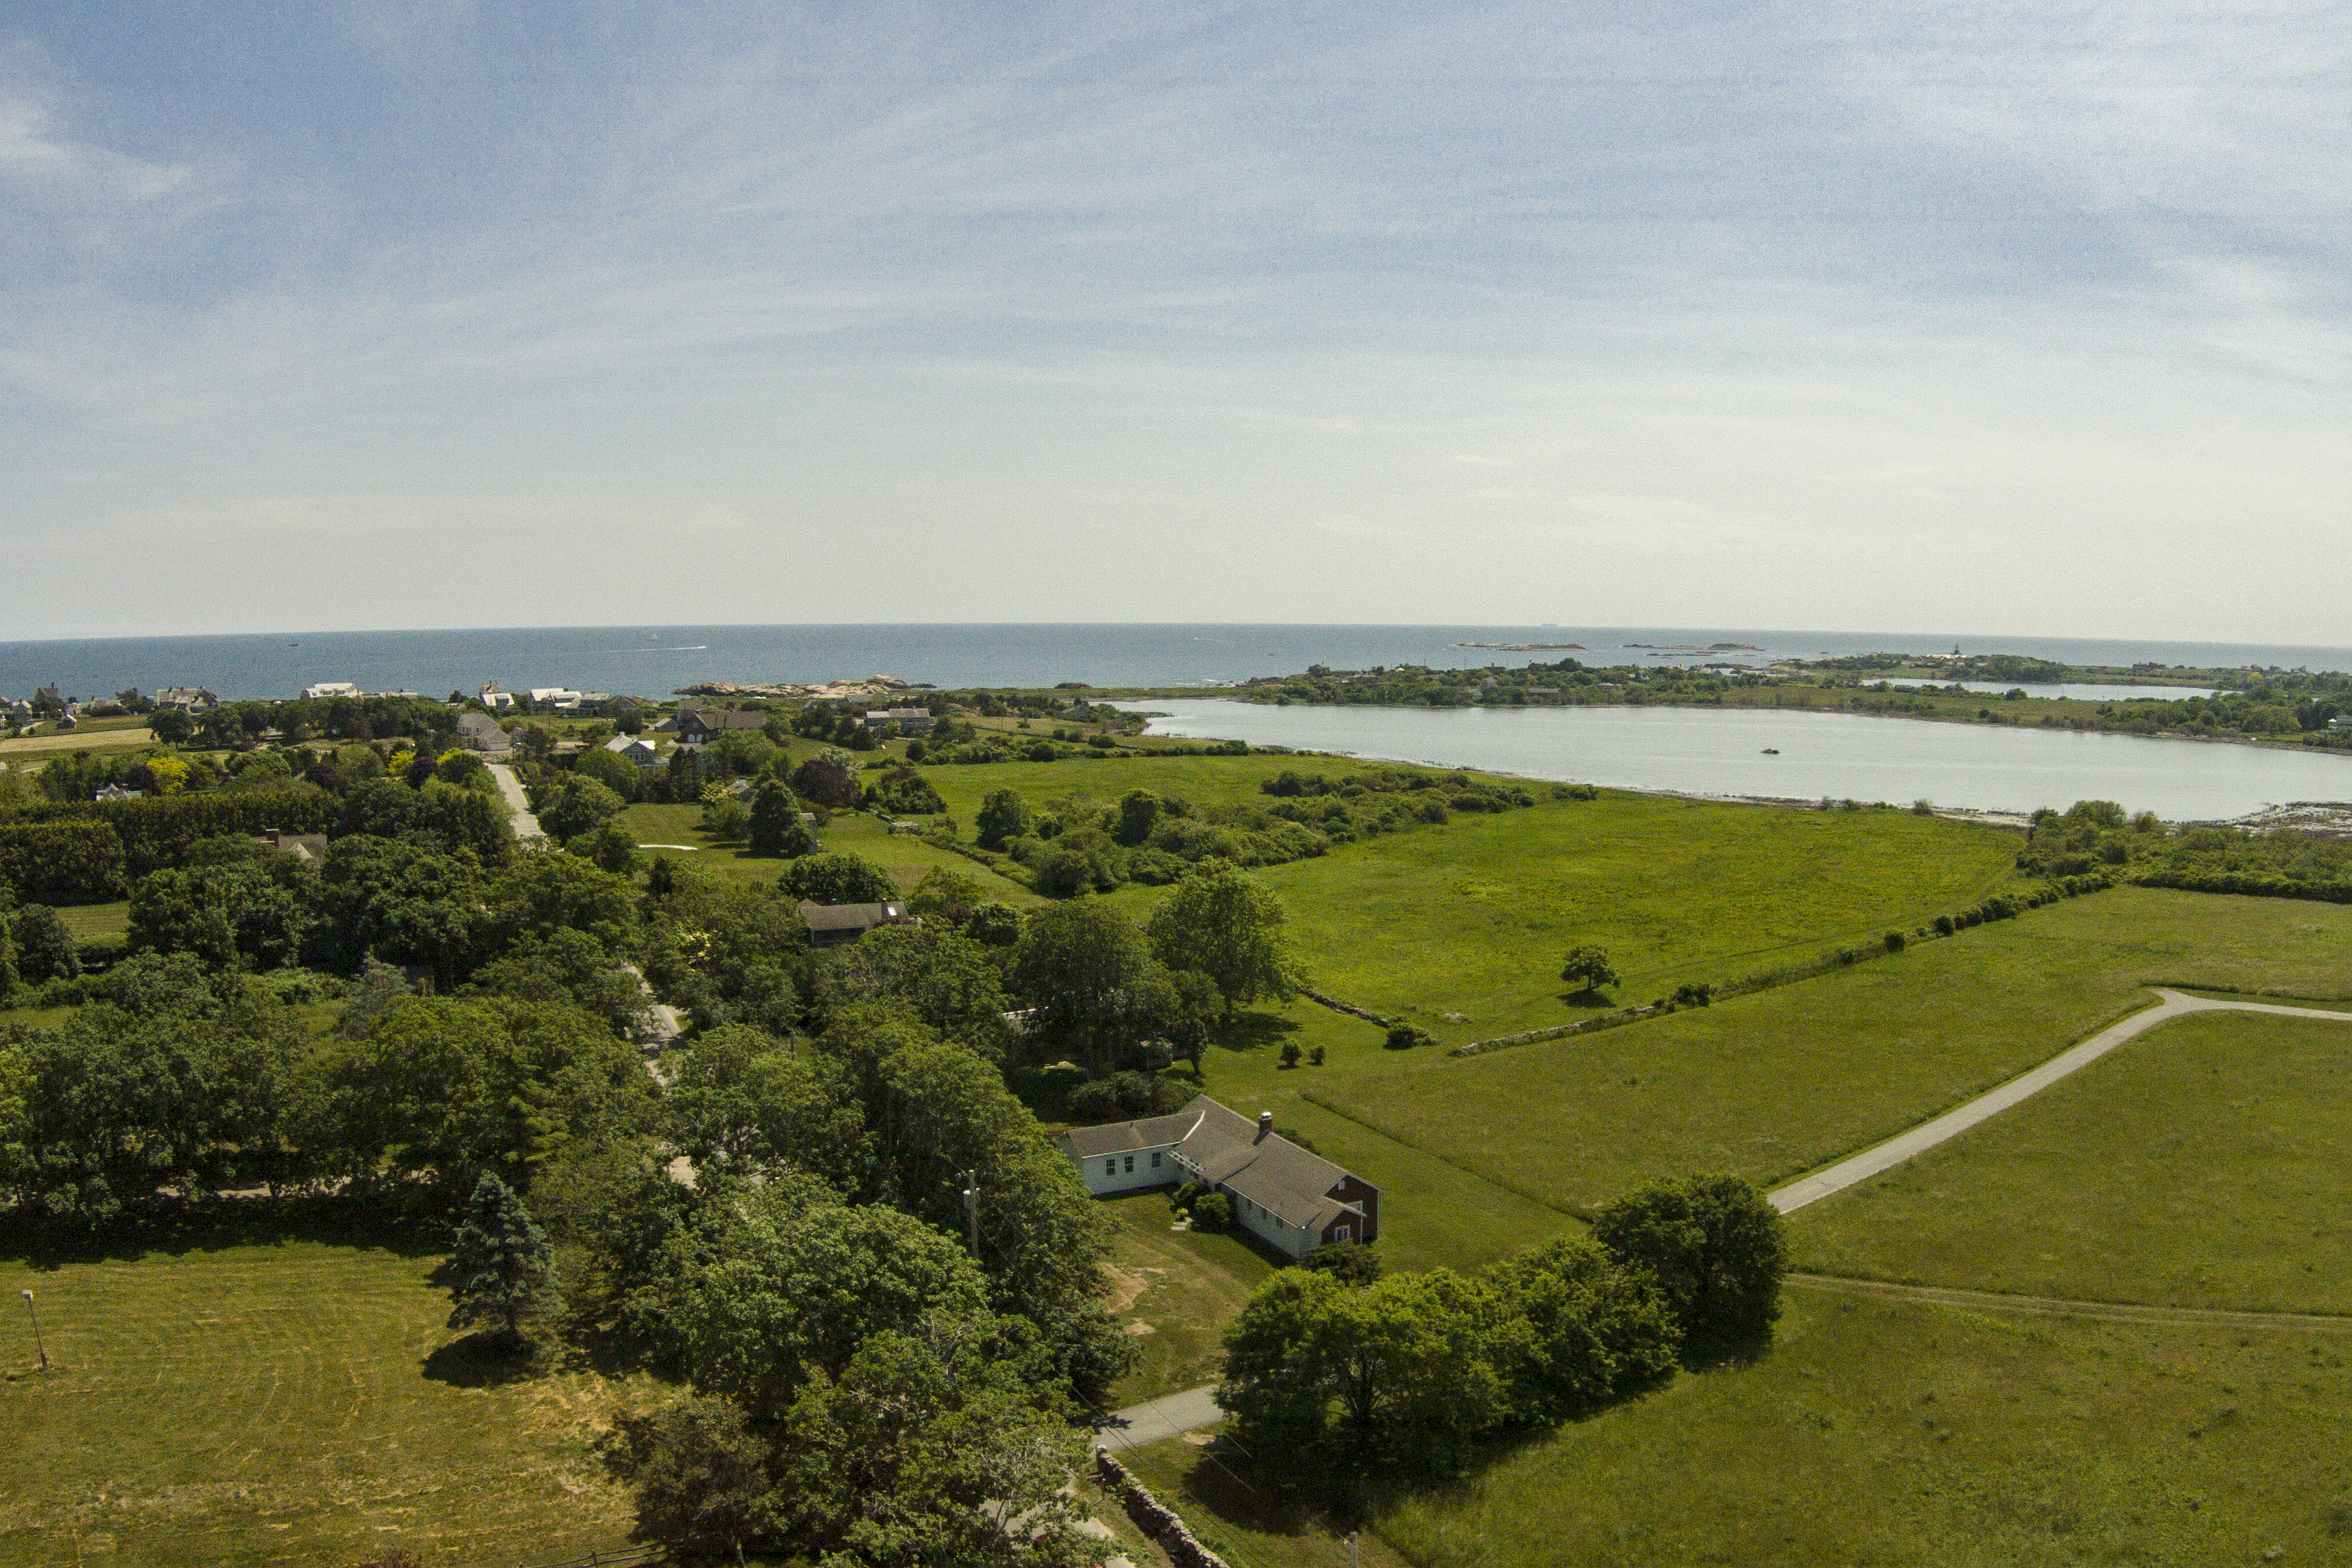 Single Family Home for Sale at 71 Warren's Point Rd, Little Compton, RI Little Compton, Rhode Island 02837 United States